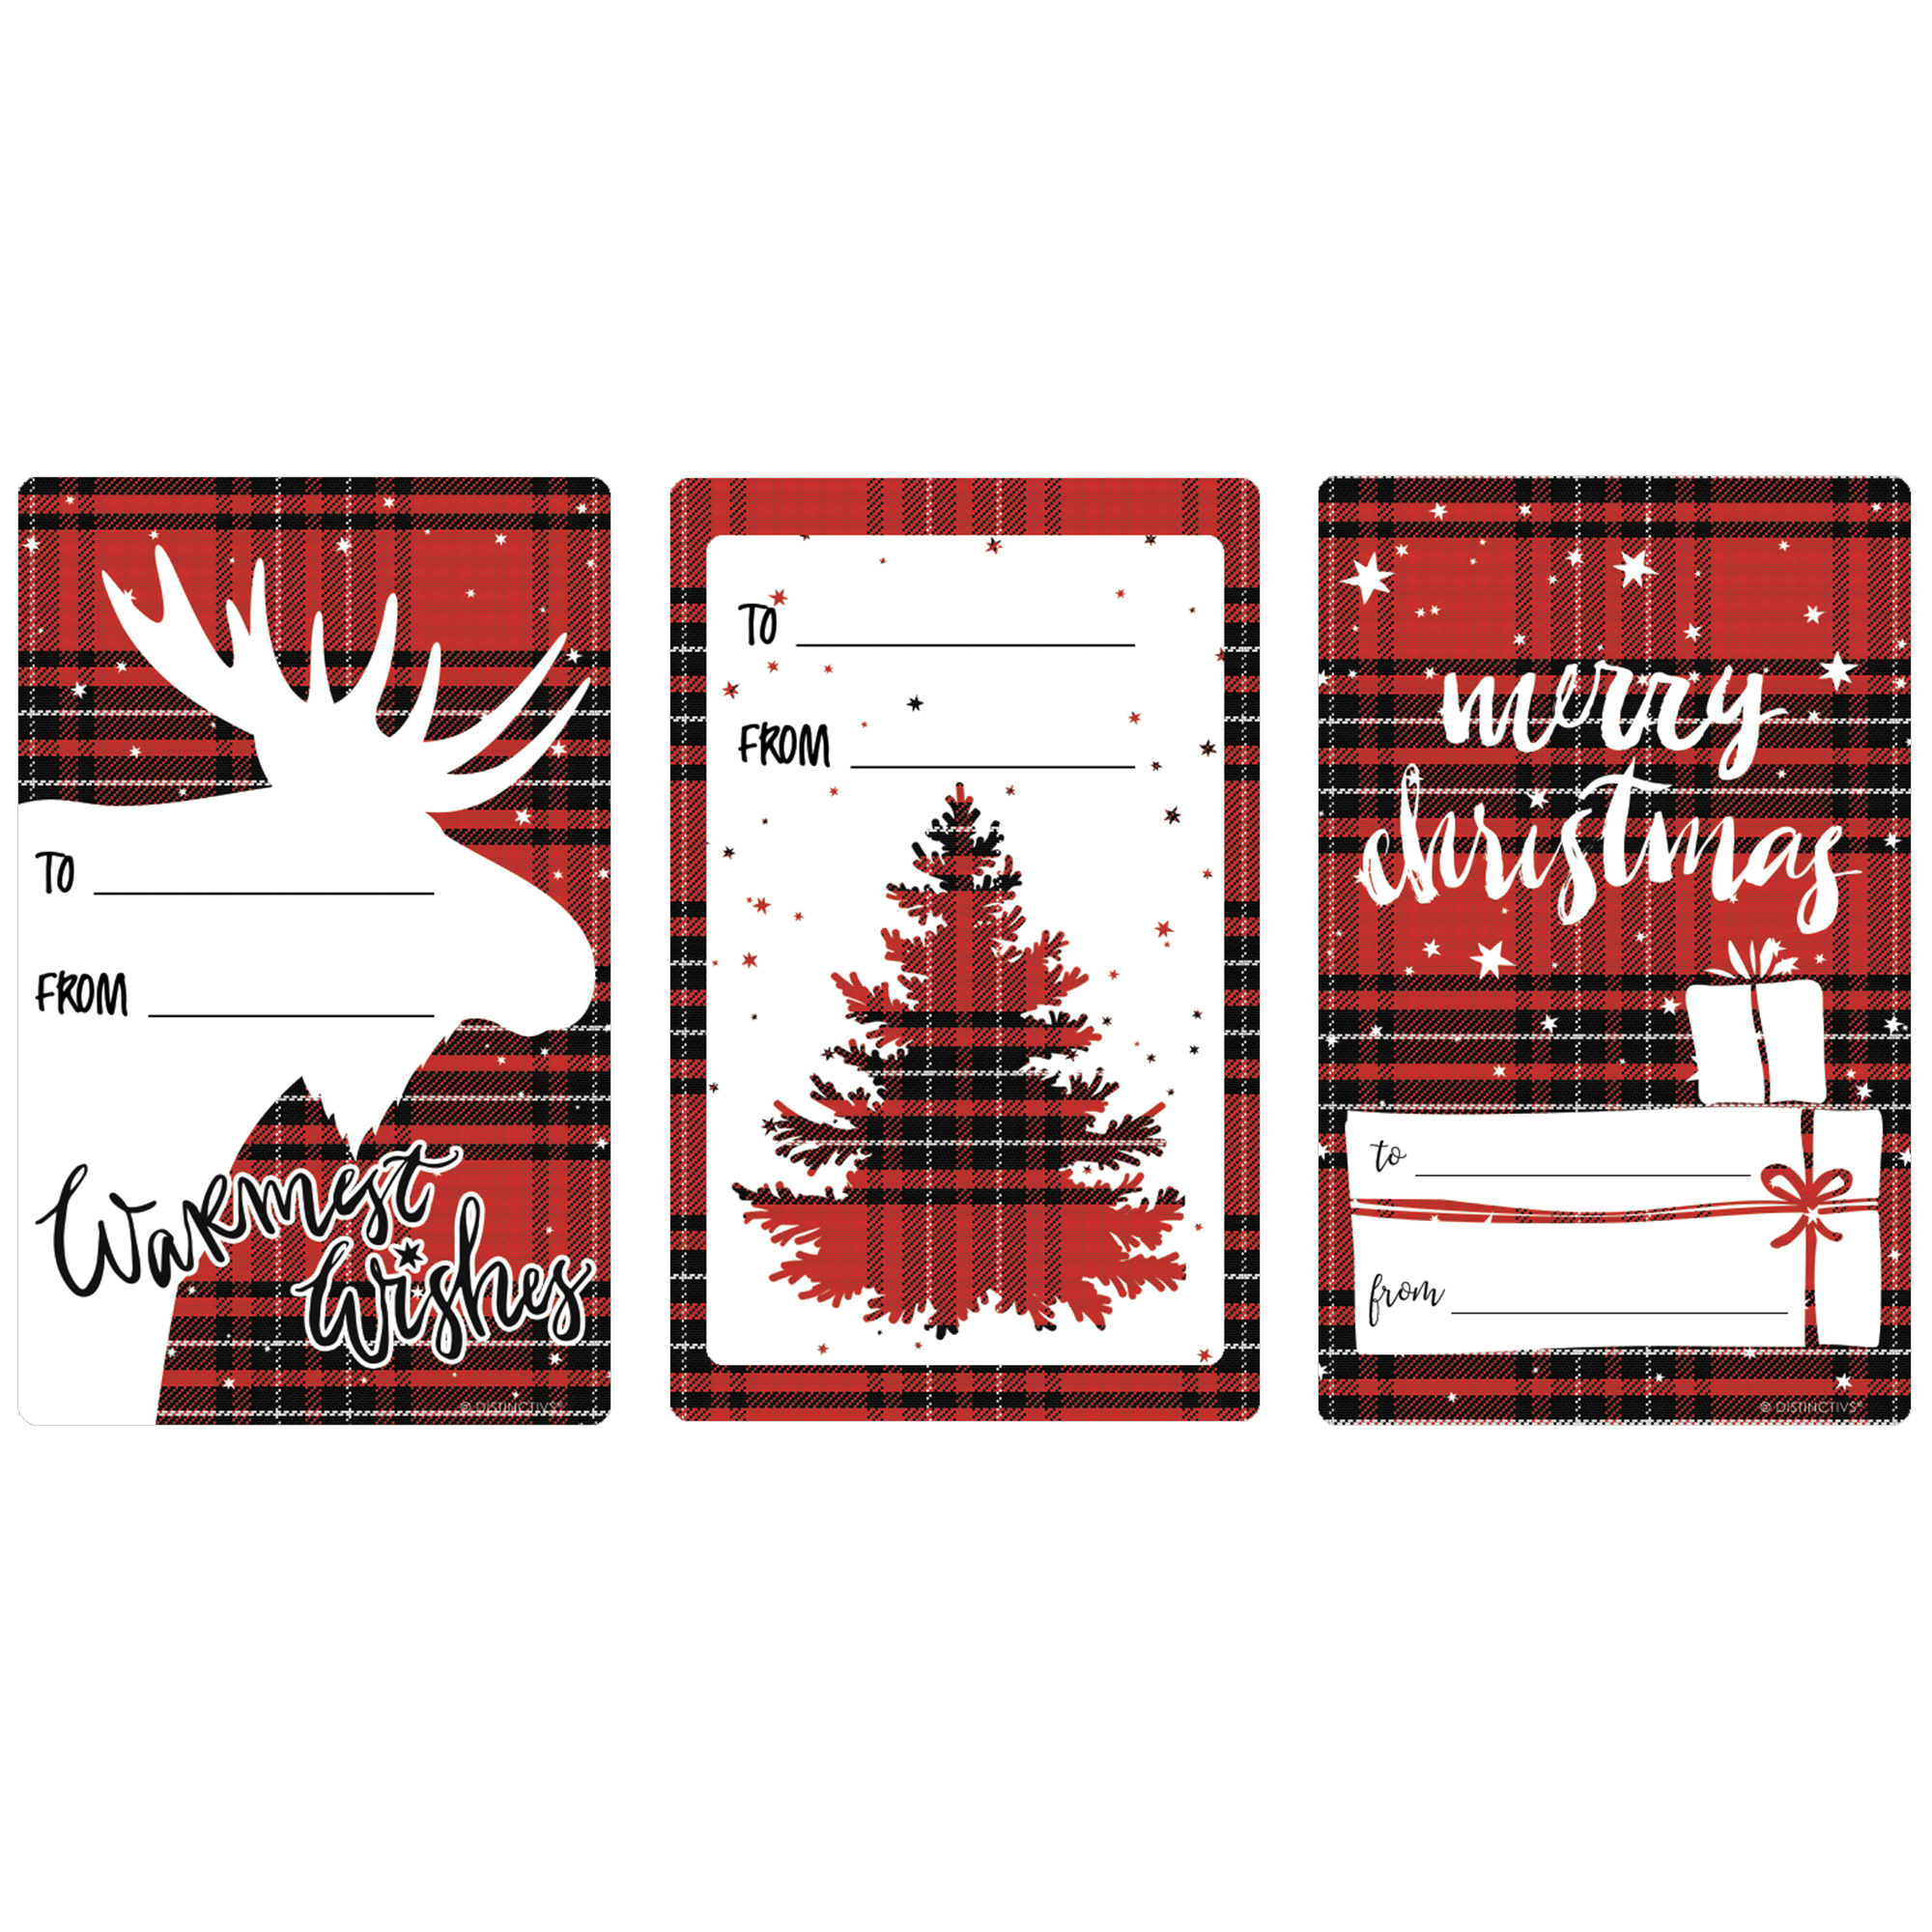 Plaid Christmas Gift Tag Stickers, 72ct - Christmas Gift Tags Wrapping Supplies - 72 Count To From Stickers